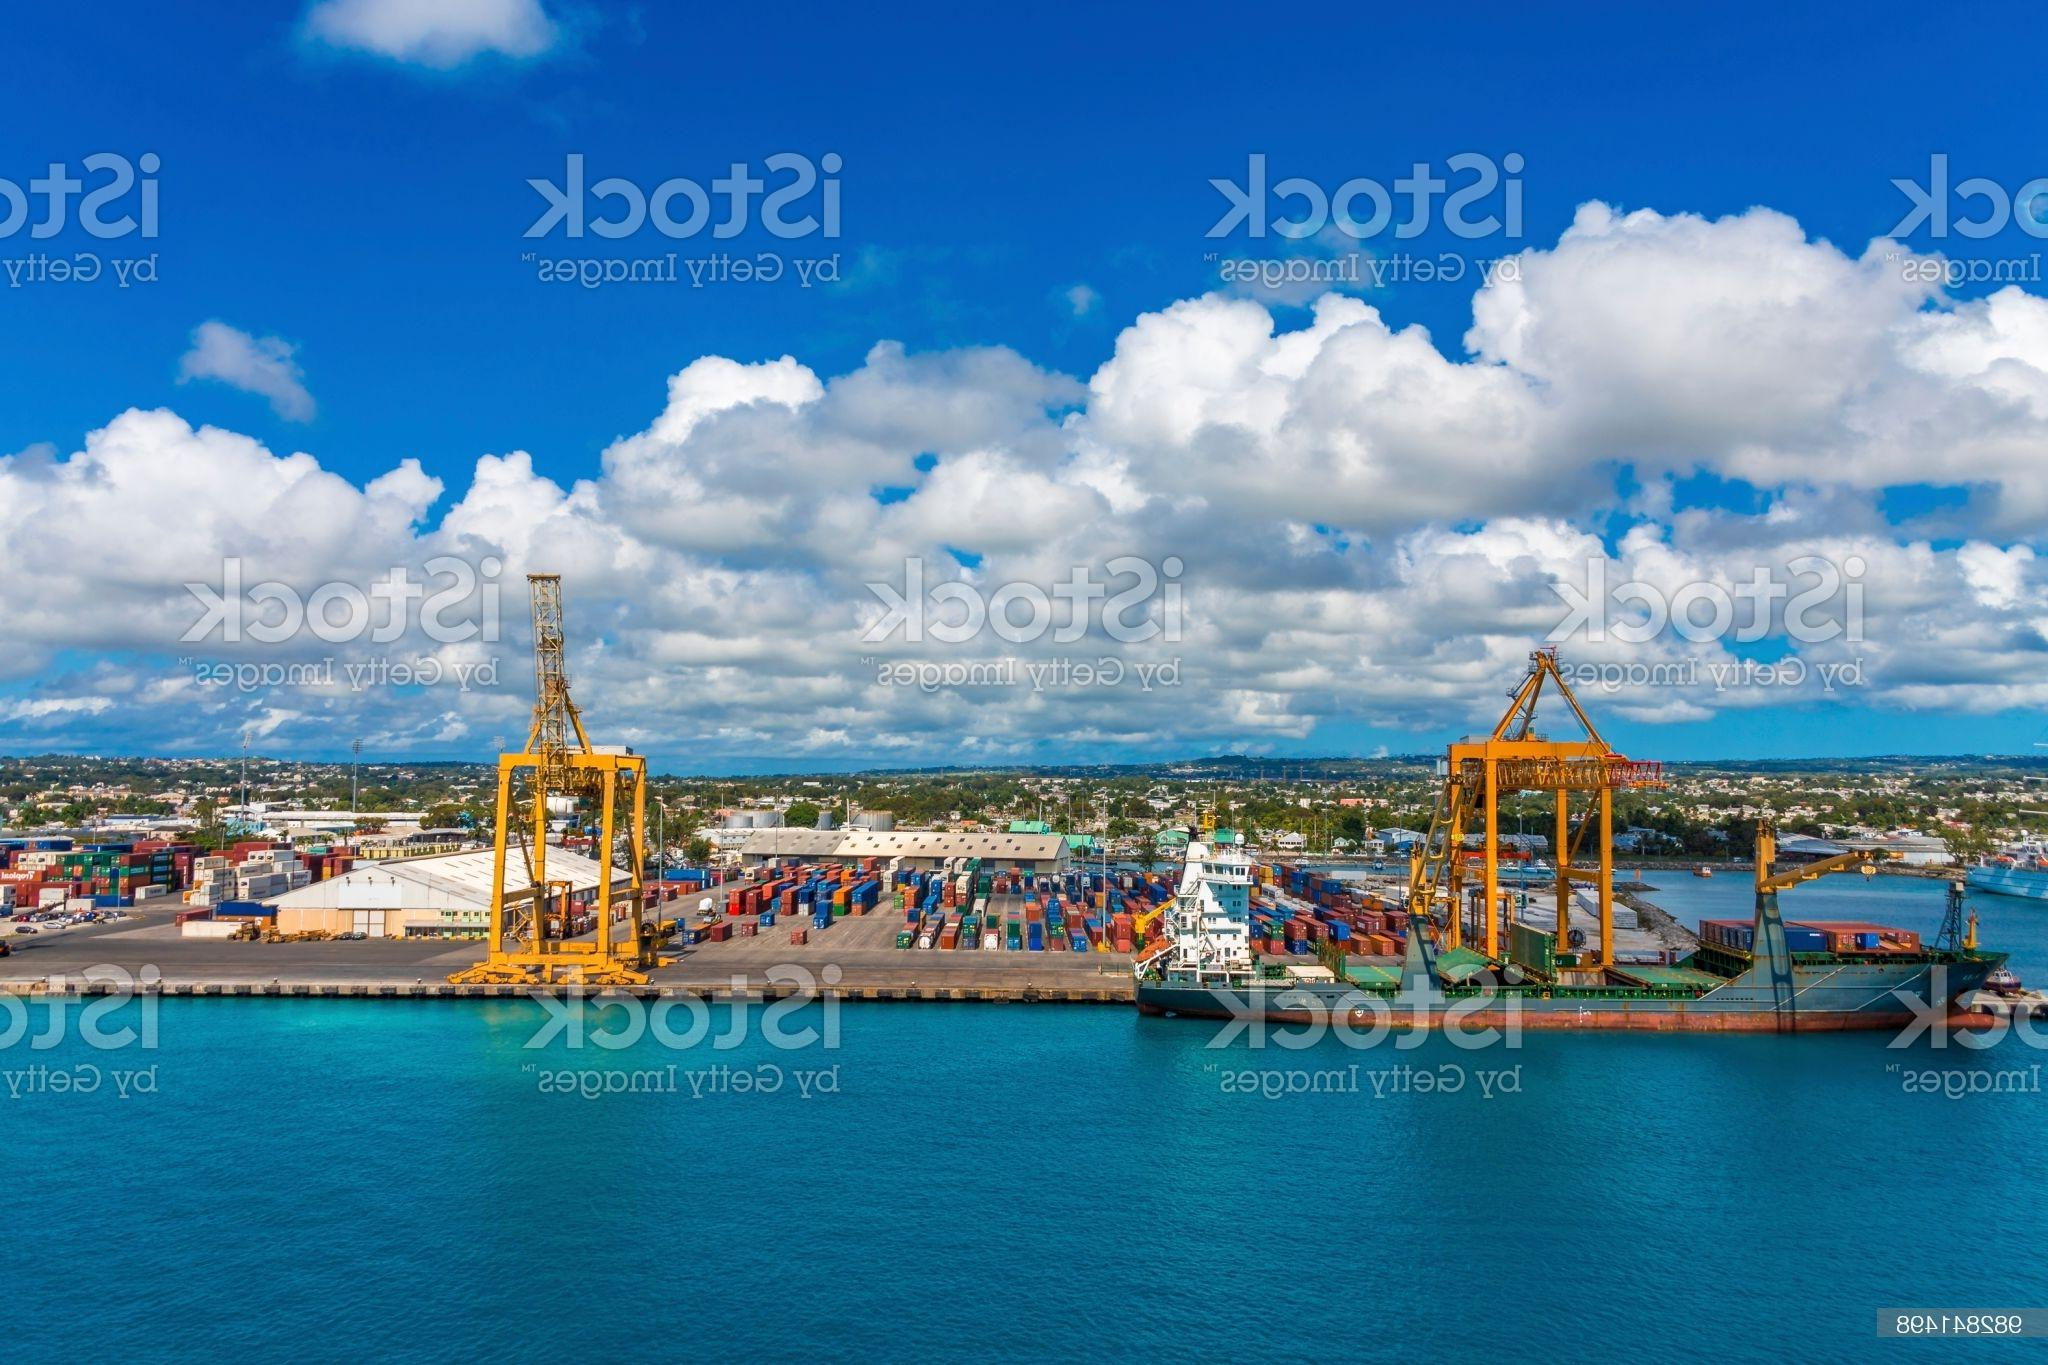 Freighter and Containers in Barbados Image Royalty Free